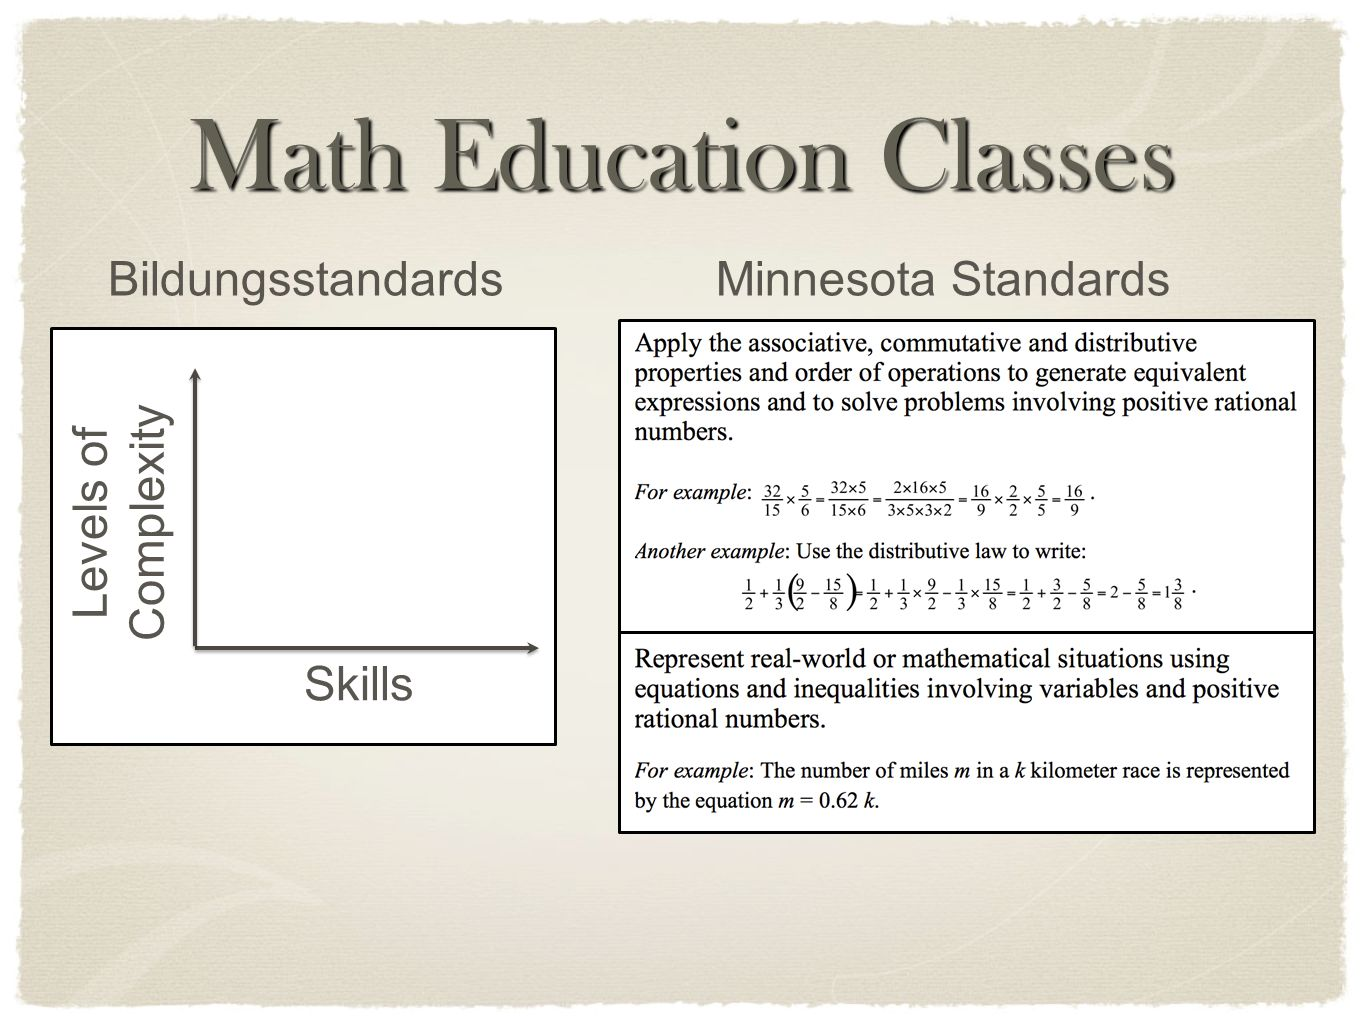 Math Education Classes Skills Levels of Complexity BildungsstandardsMinnesota Standards